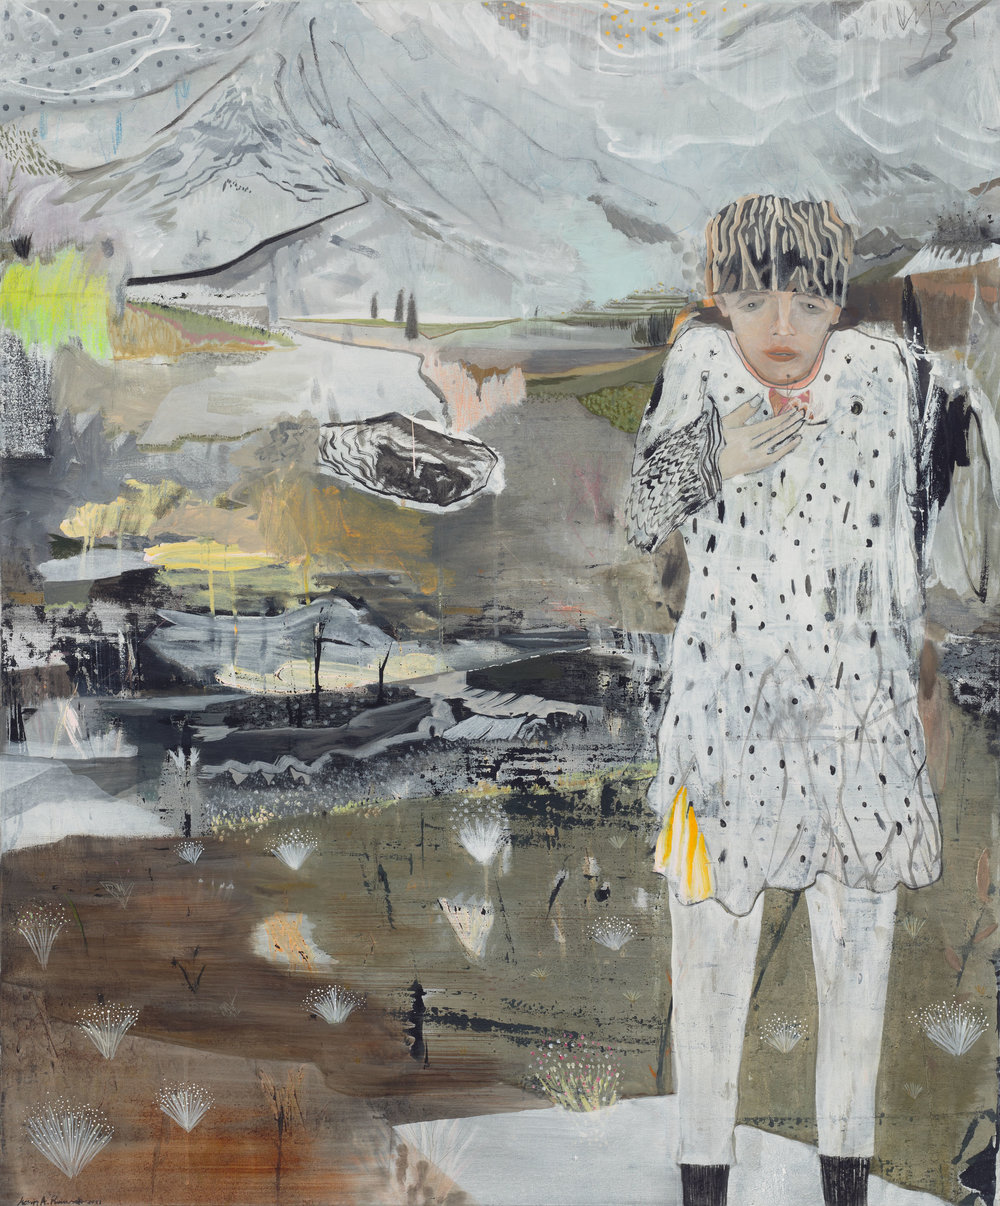 wherever you go I m already there, 120x100cm, 2012